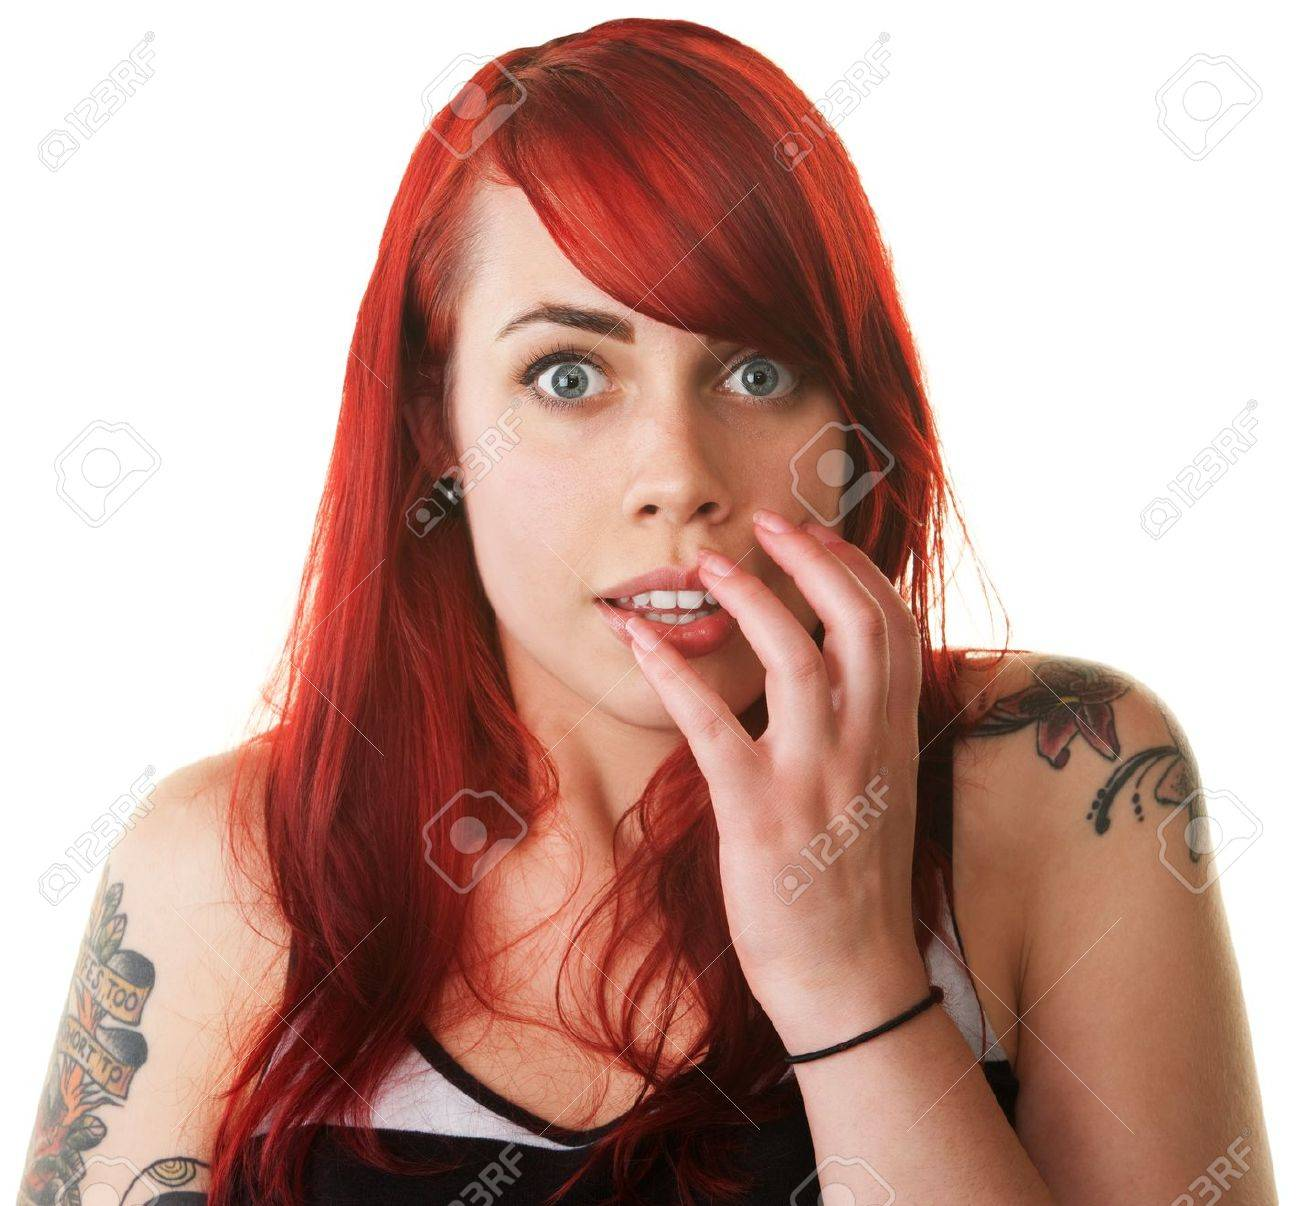 Terrified European lady in red hair and tattoos Stock Photo - 16190287